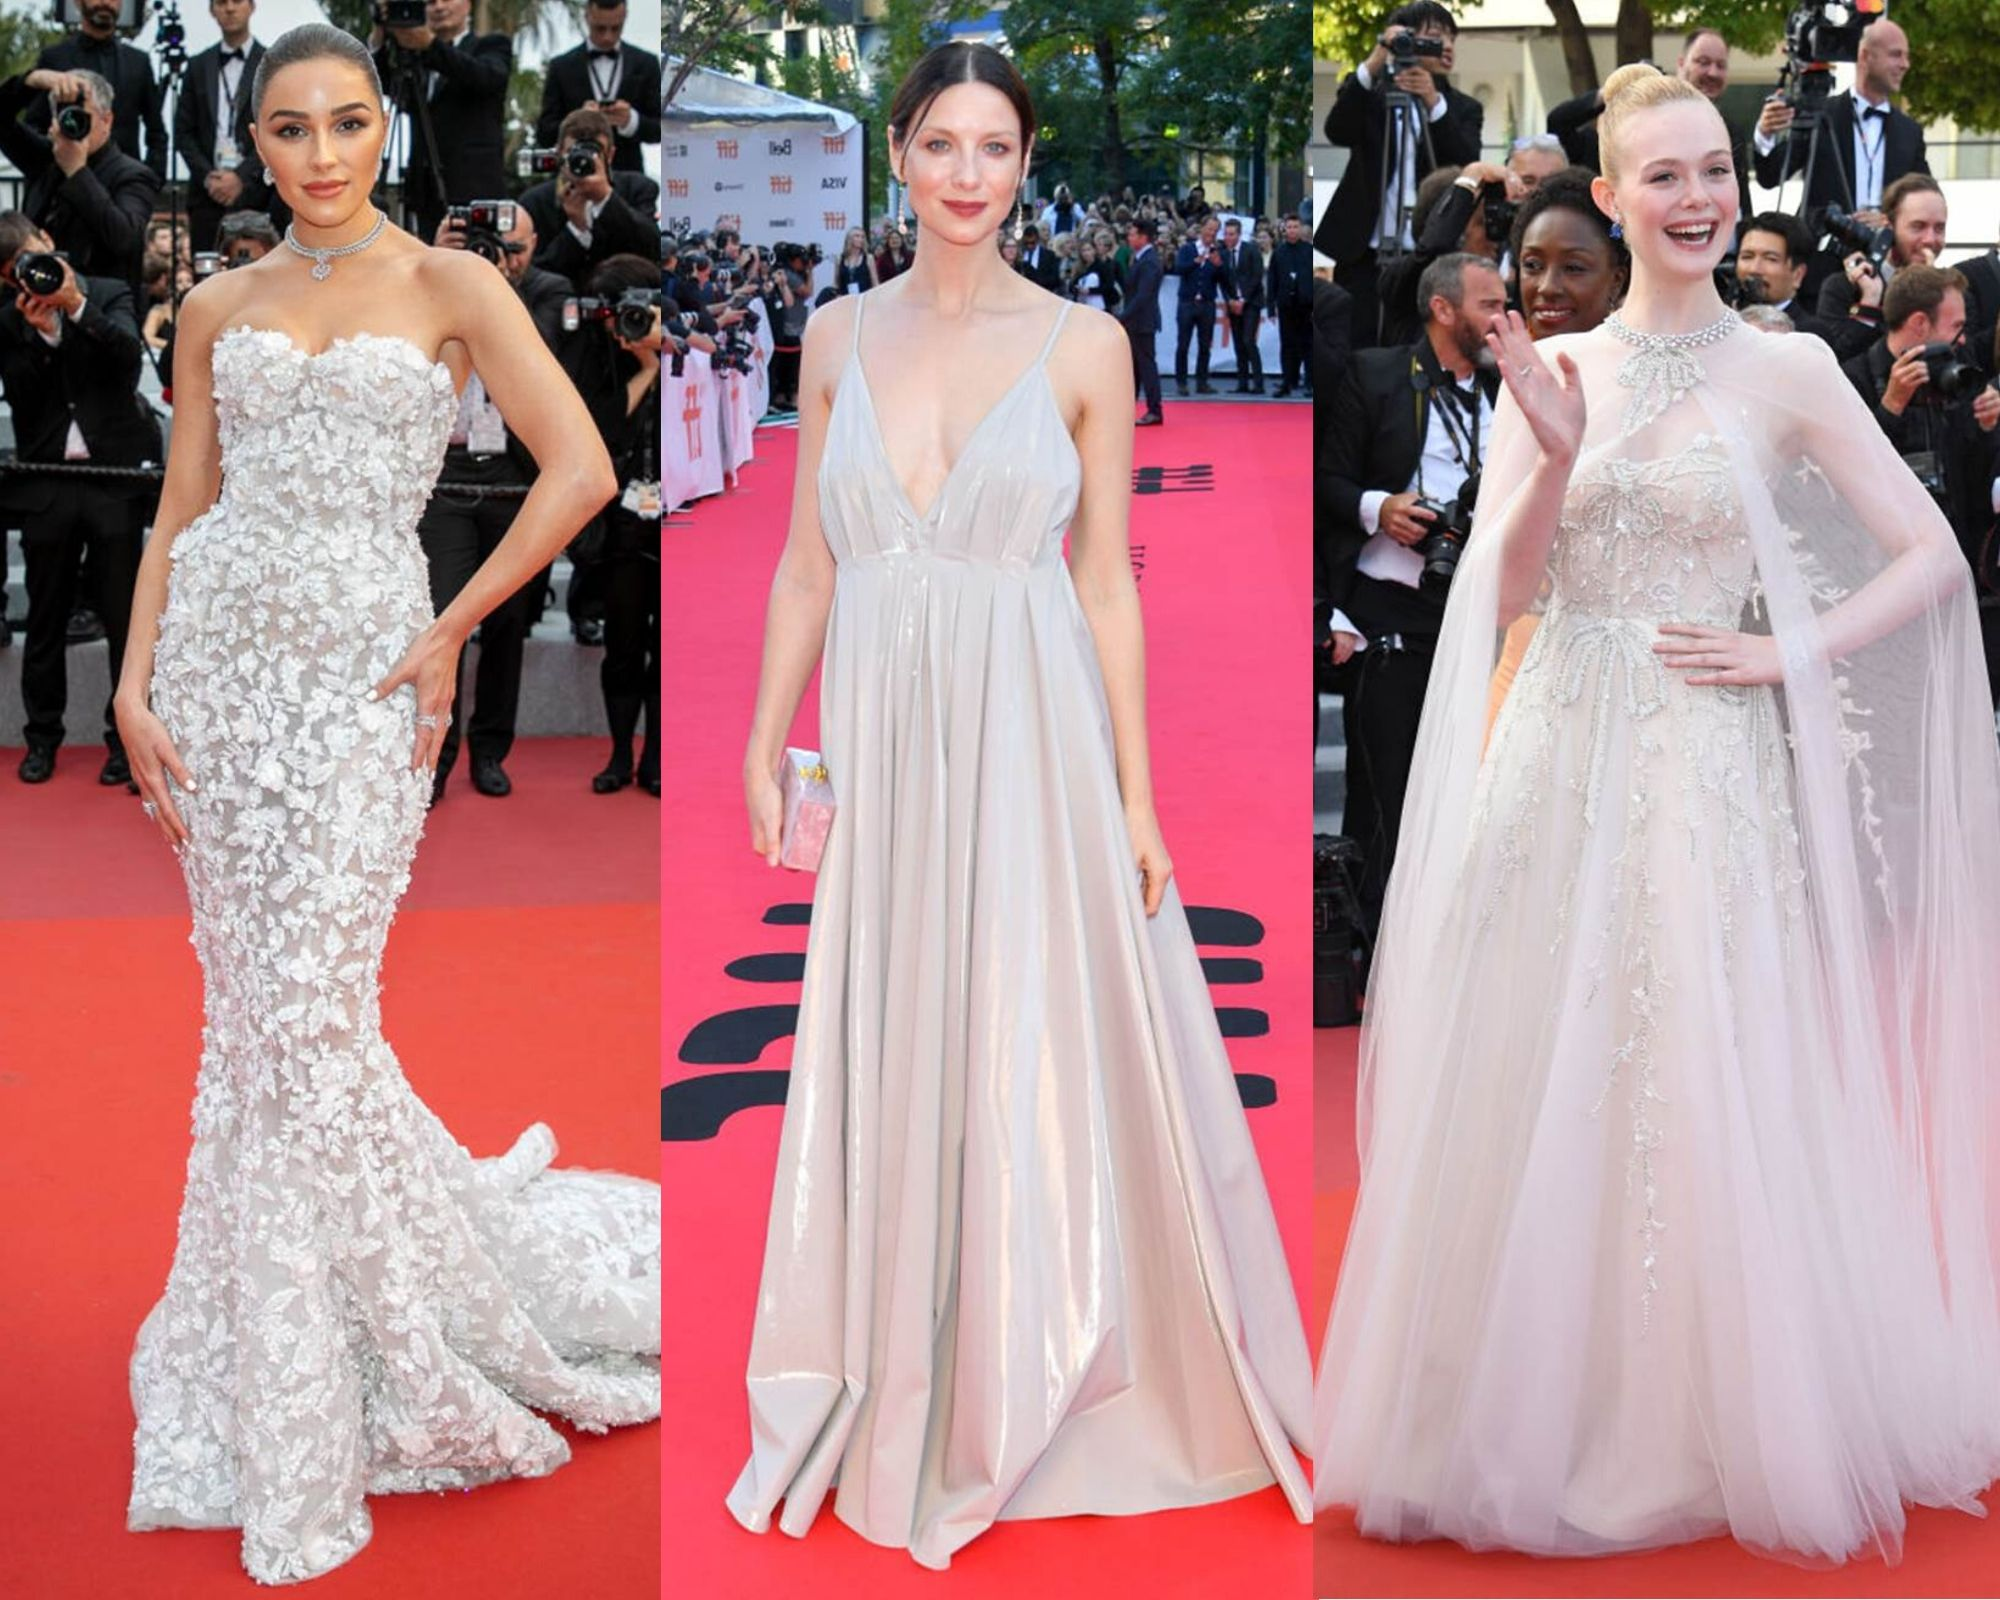 12 Times Stars Wore Wedding Dresses On The Red Carpet Fillgap News